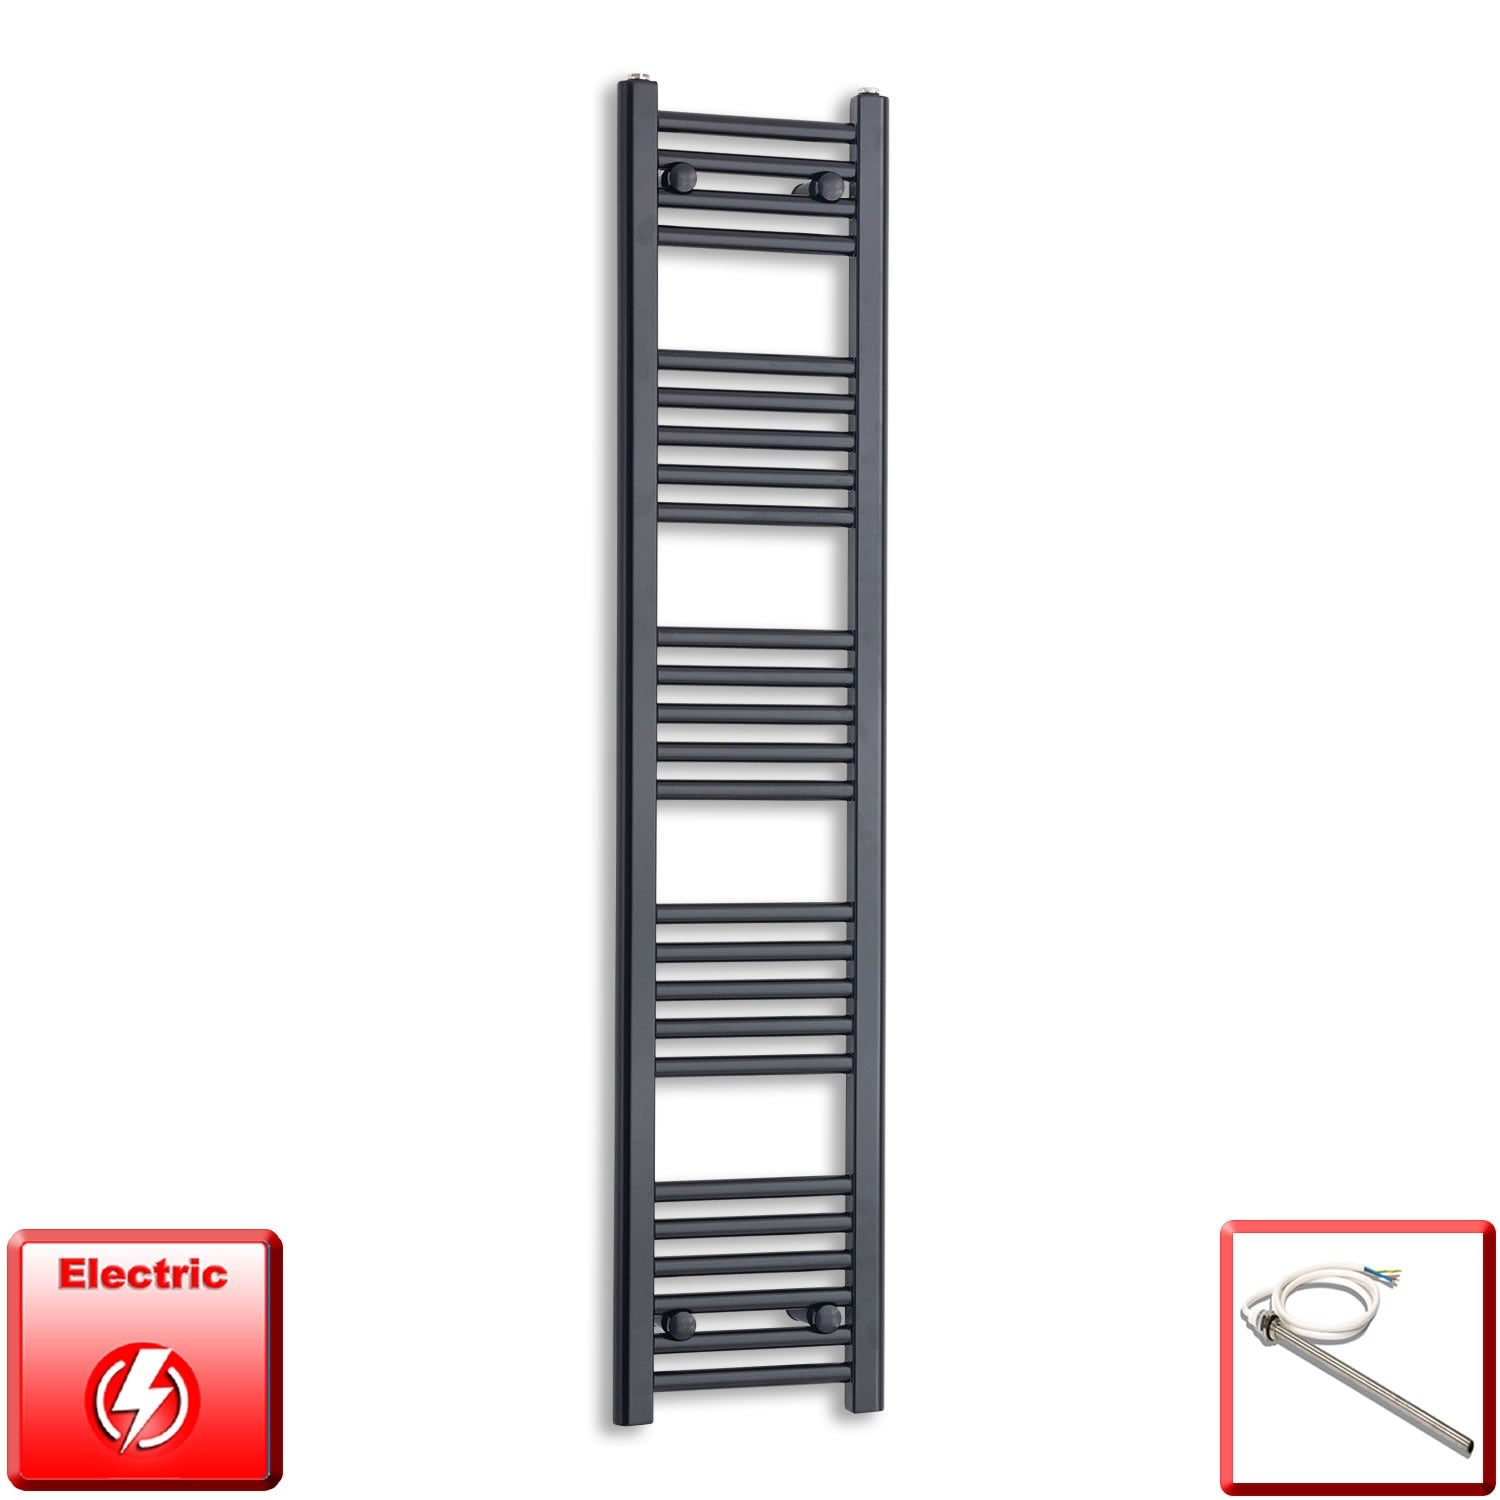 300mm Wide 1400mm High Pre-Filled Black Electric Towel Rail Radiator With Single Heat Element